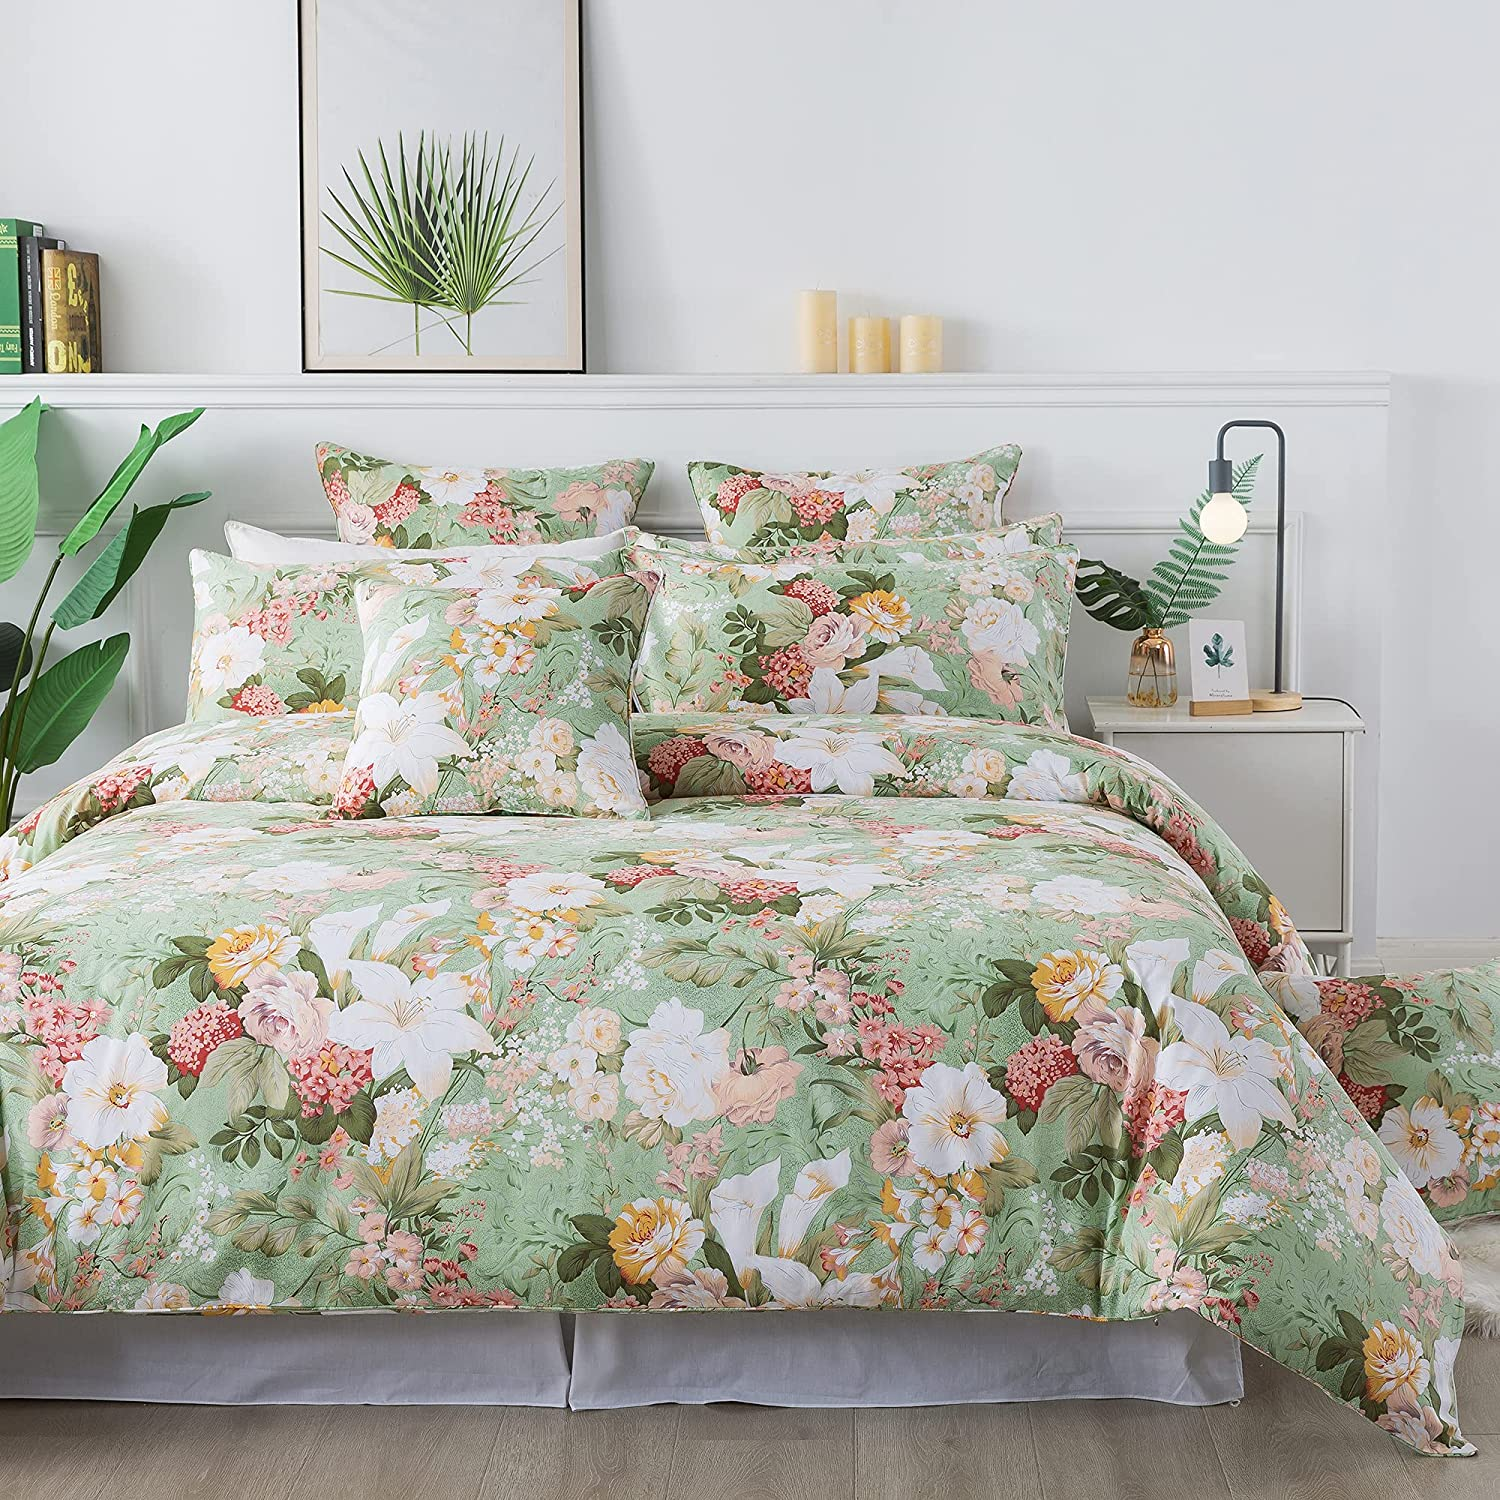 FADFAY Floral Duvet Cover Set Queen Cotton Time sale B Vintage Shabby 100% Dealing full price reduction